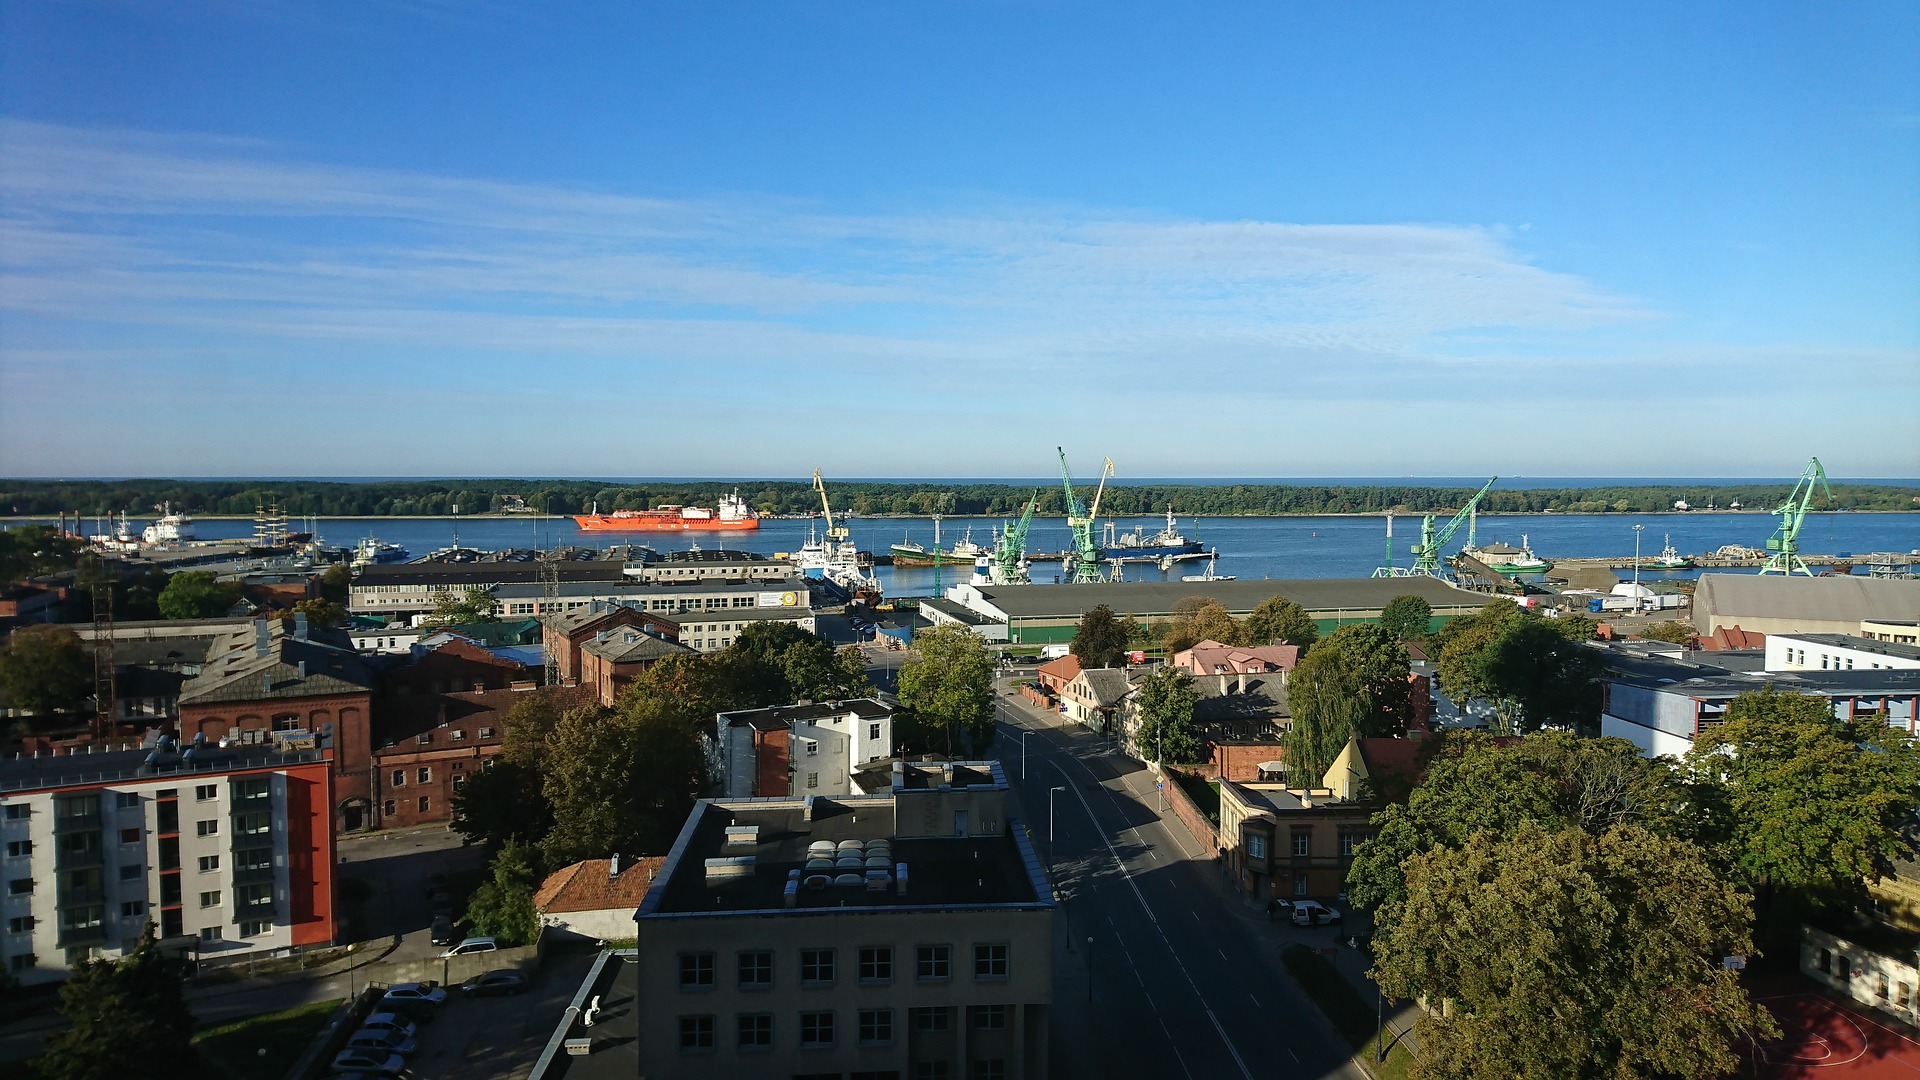 City of Klaipeda You Must Visit in Lithuania